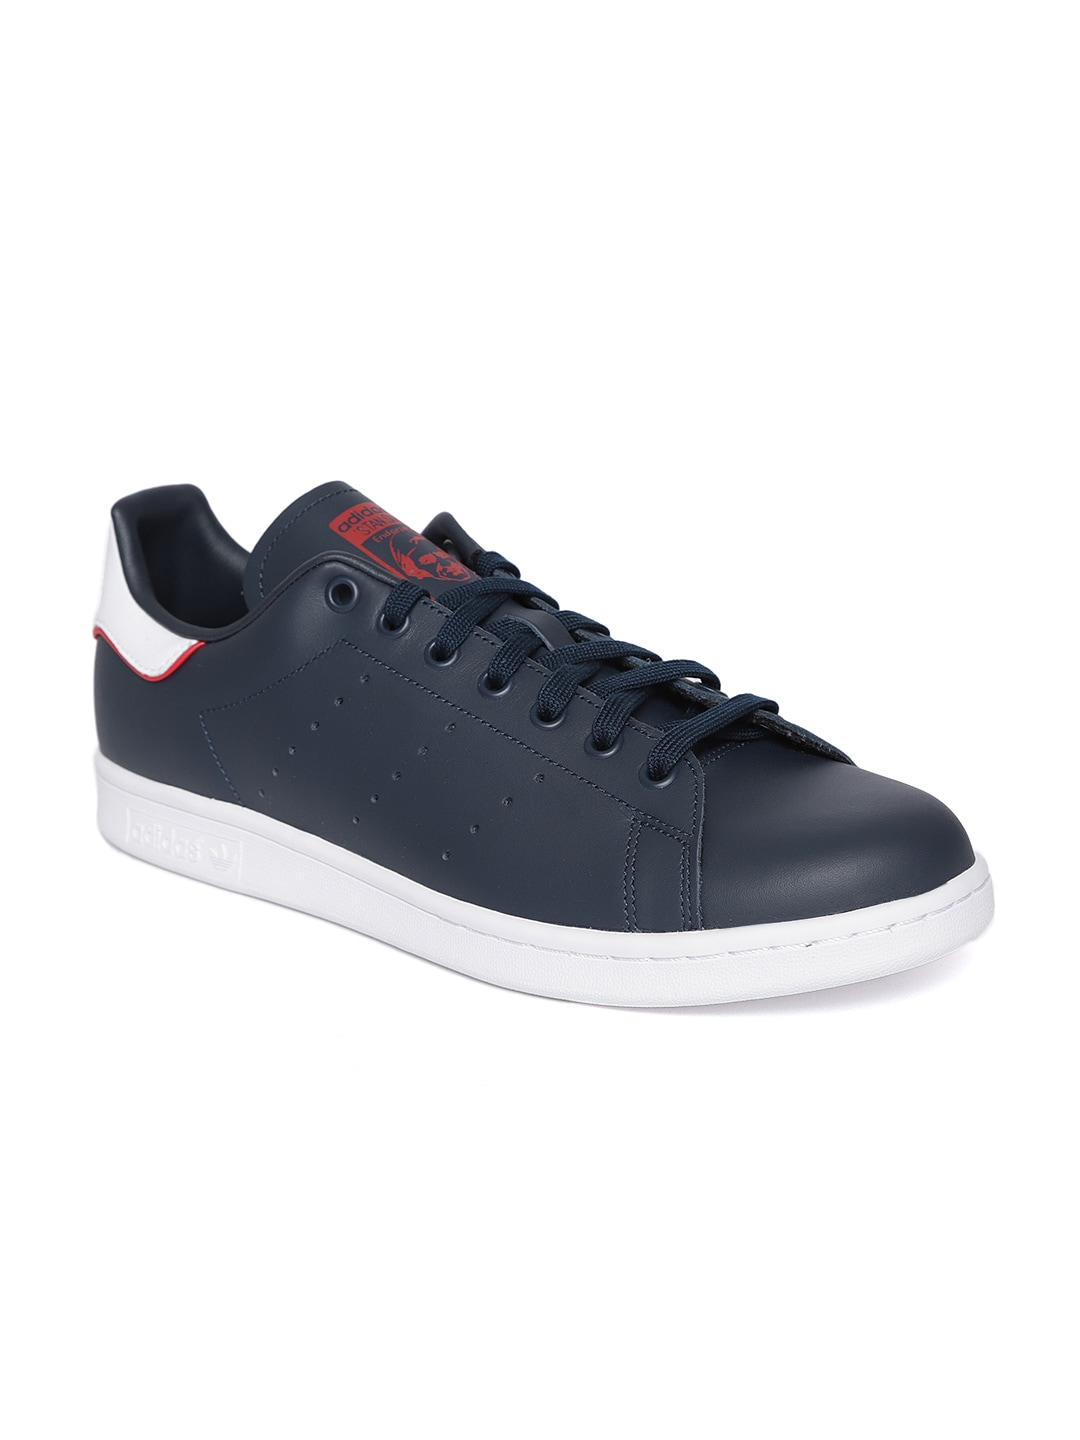 premium selection 2d460 a6bd2 Adidas Stan Smith Sneakers - Buy Stan Smith Shoes and Sneakers Online in  India - Myntra